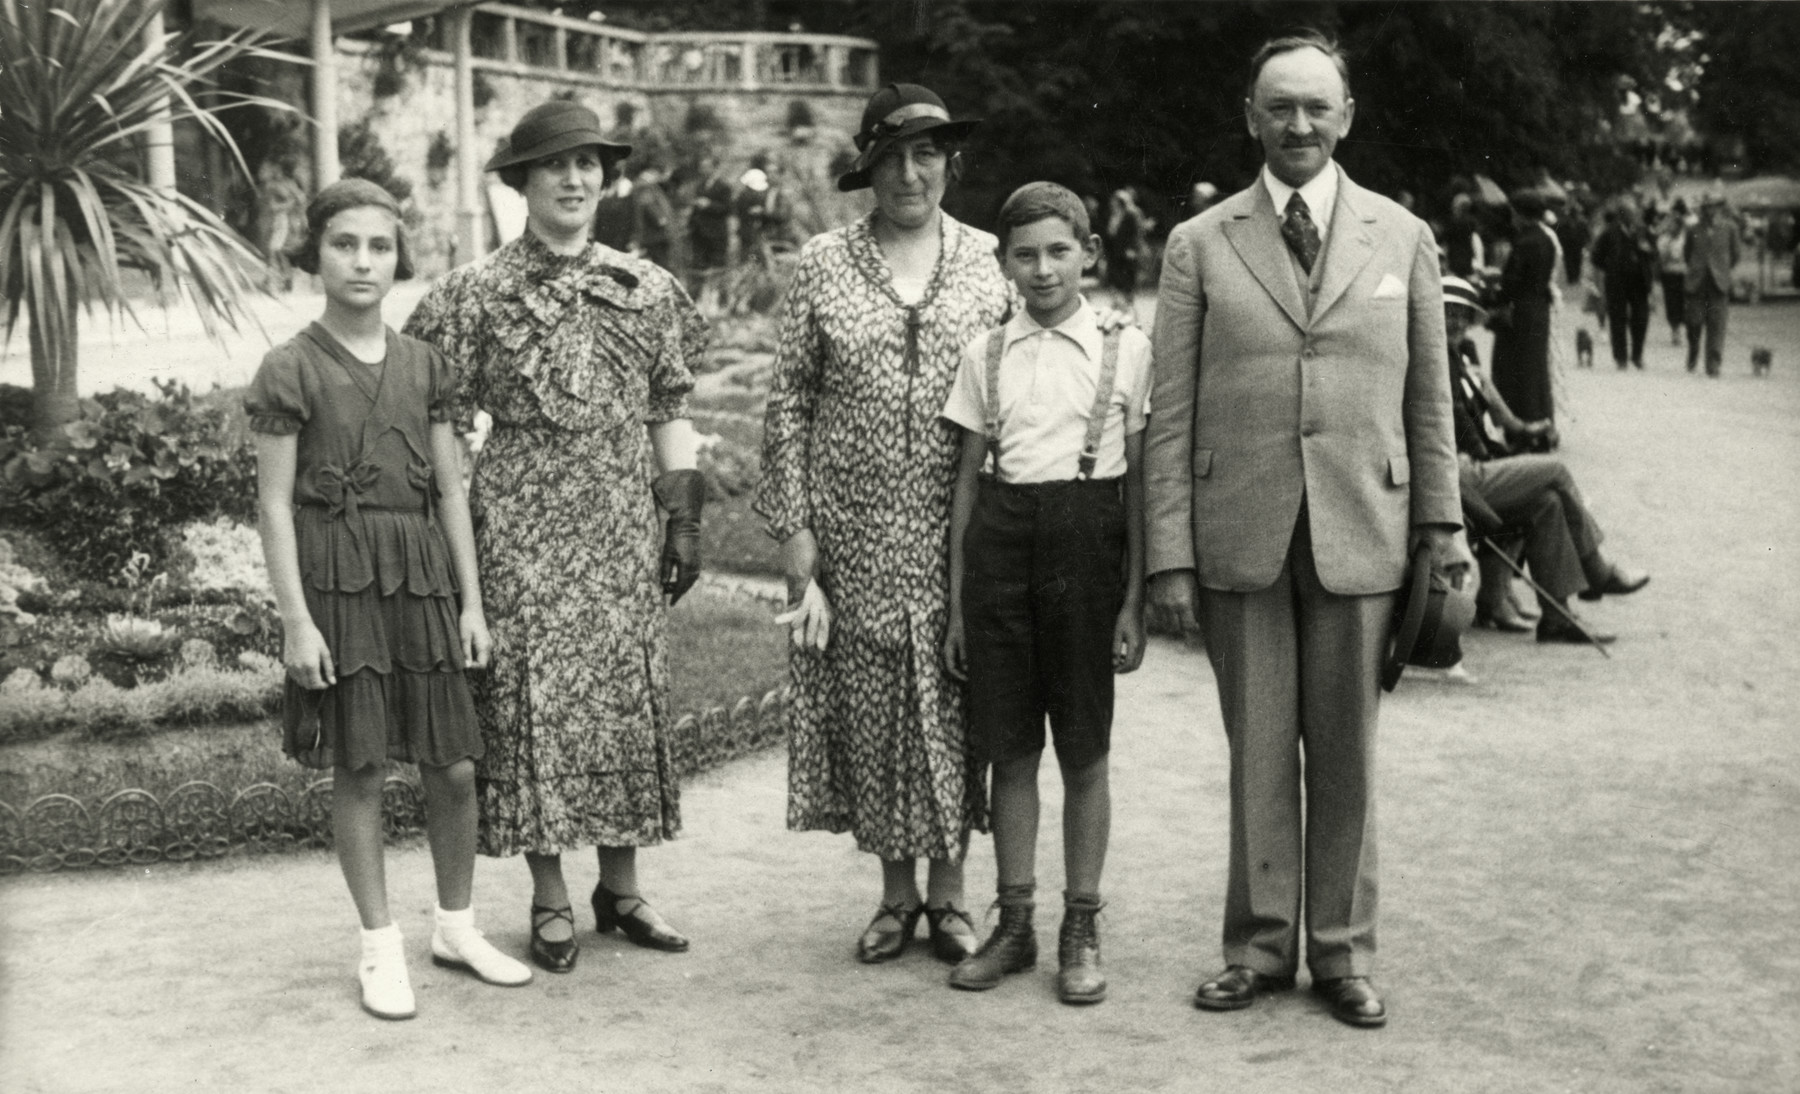 Prewar family portrait of the Steiner and Lakner families posing in an outdoor garden.  From left to right are Reline Steiner, Nelly, Josy Steiner, Leo and Adolf Lakner.